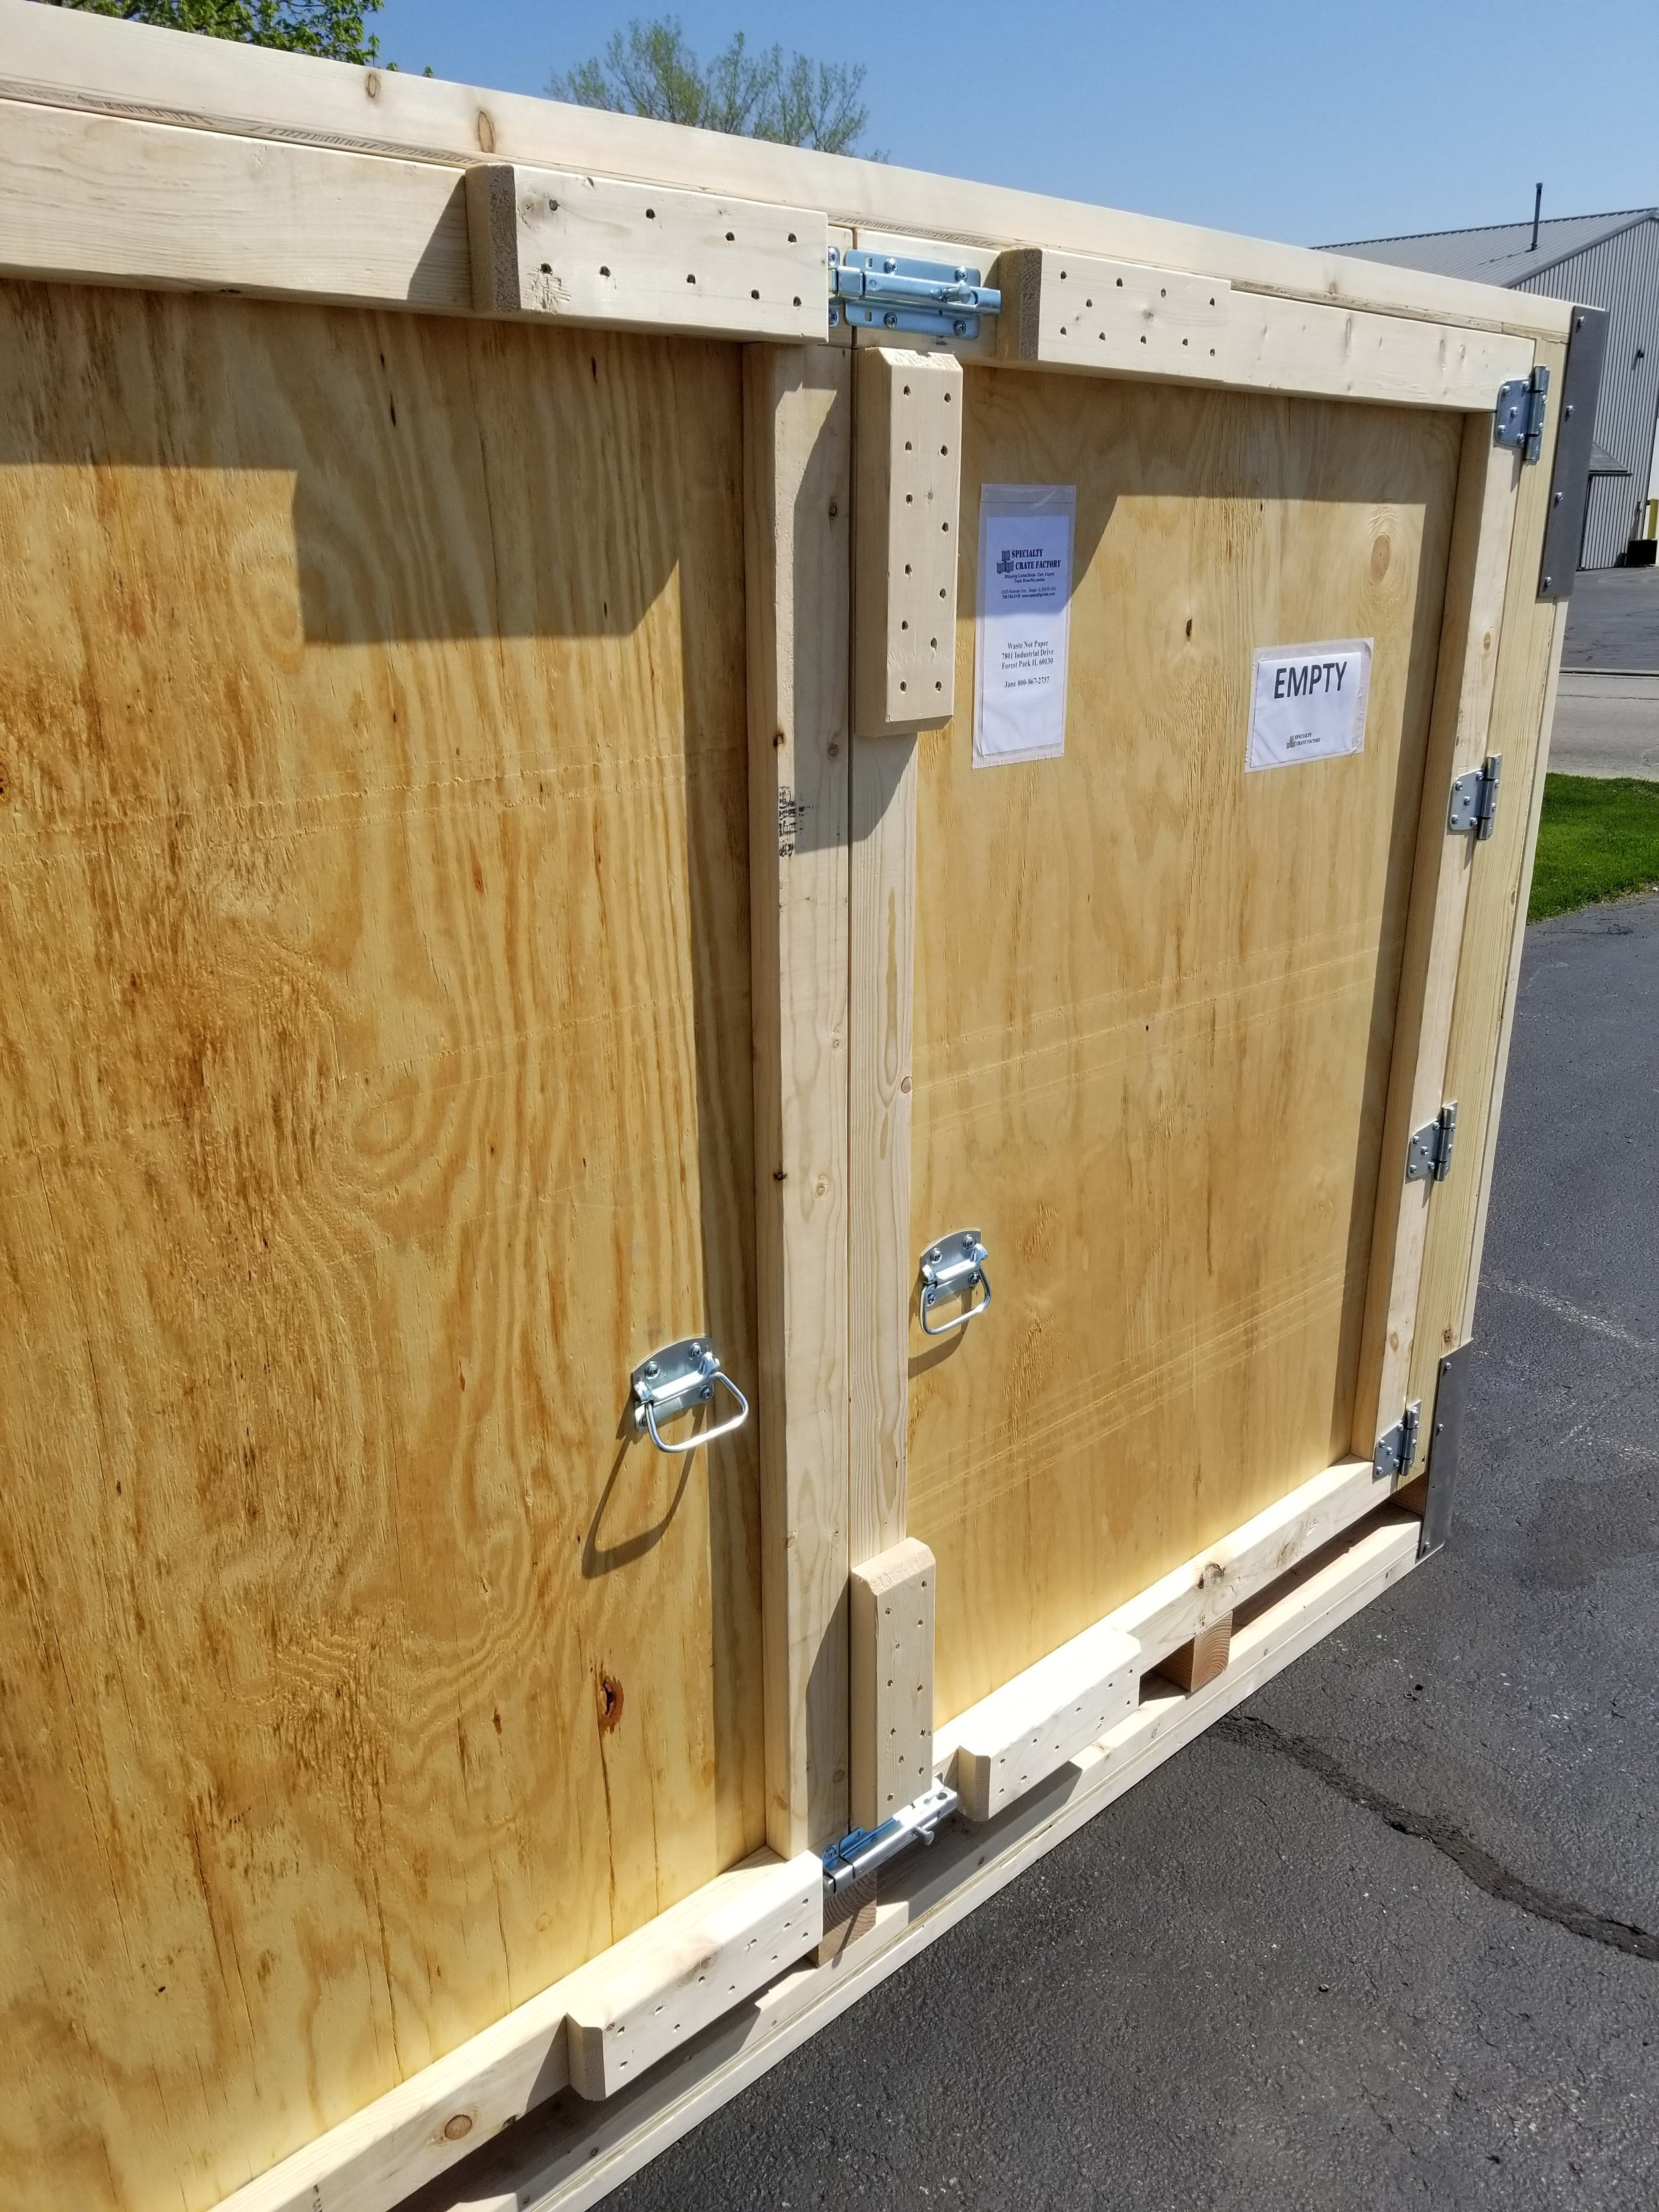 2x4 rub strips protect the hardware and crate itself from other cargo rubbing against it.